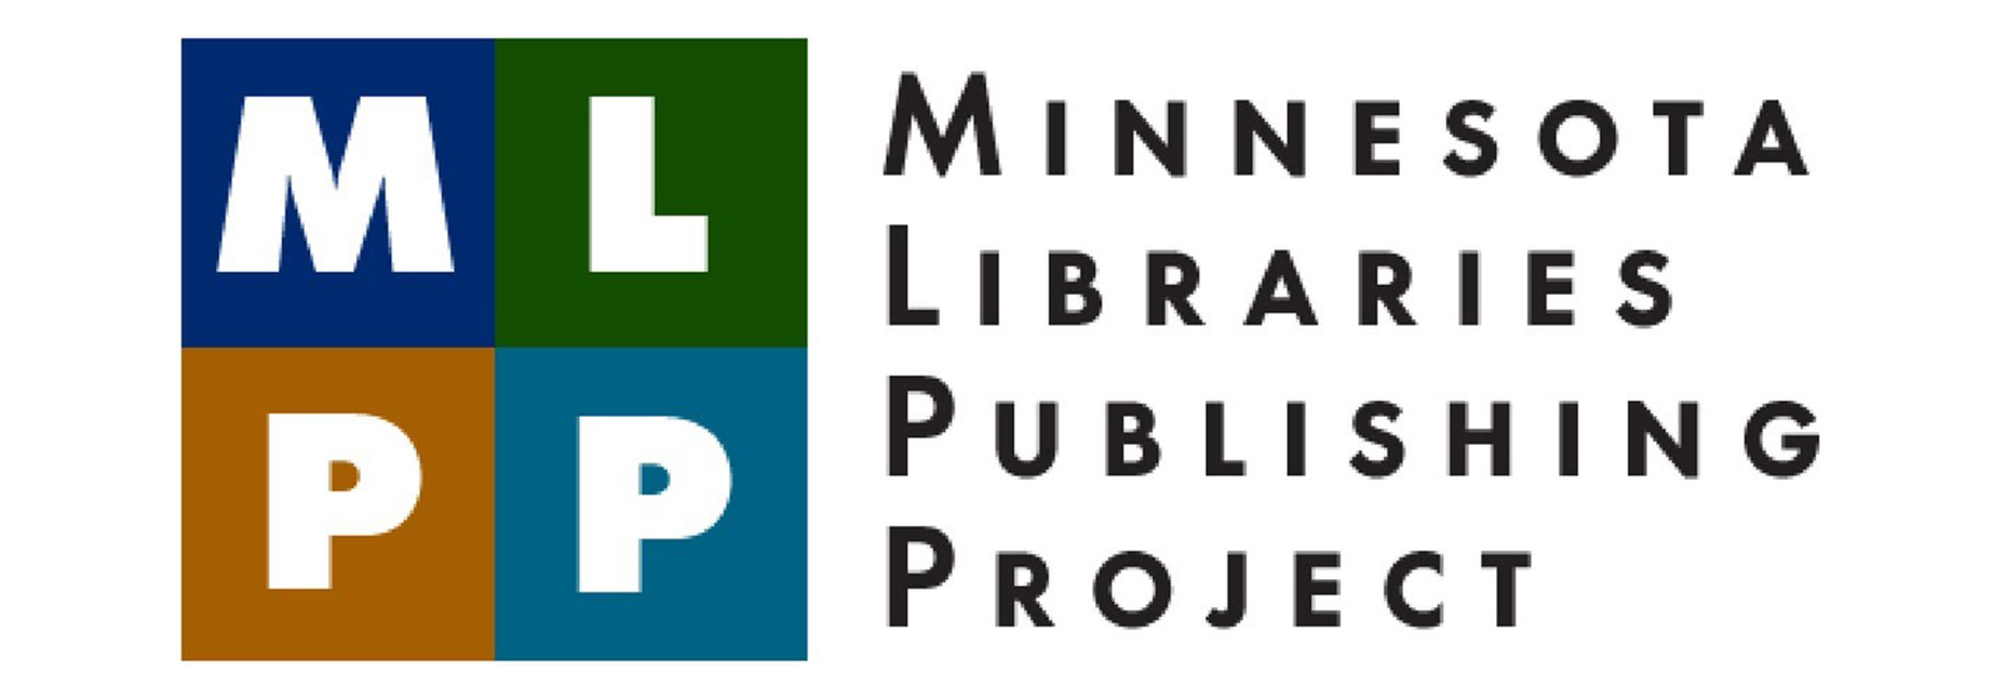 Minnesota Libraries Publishing Project logo.